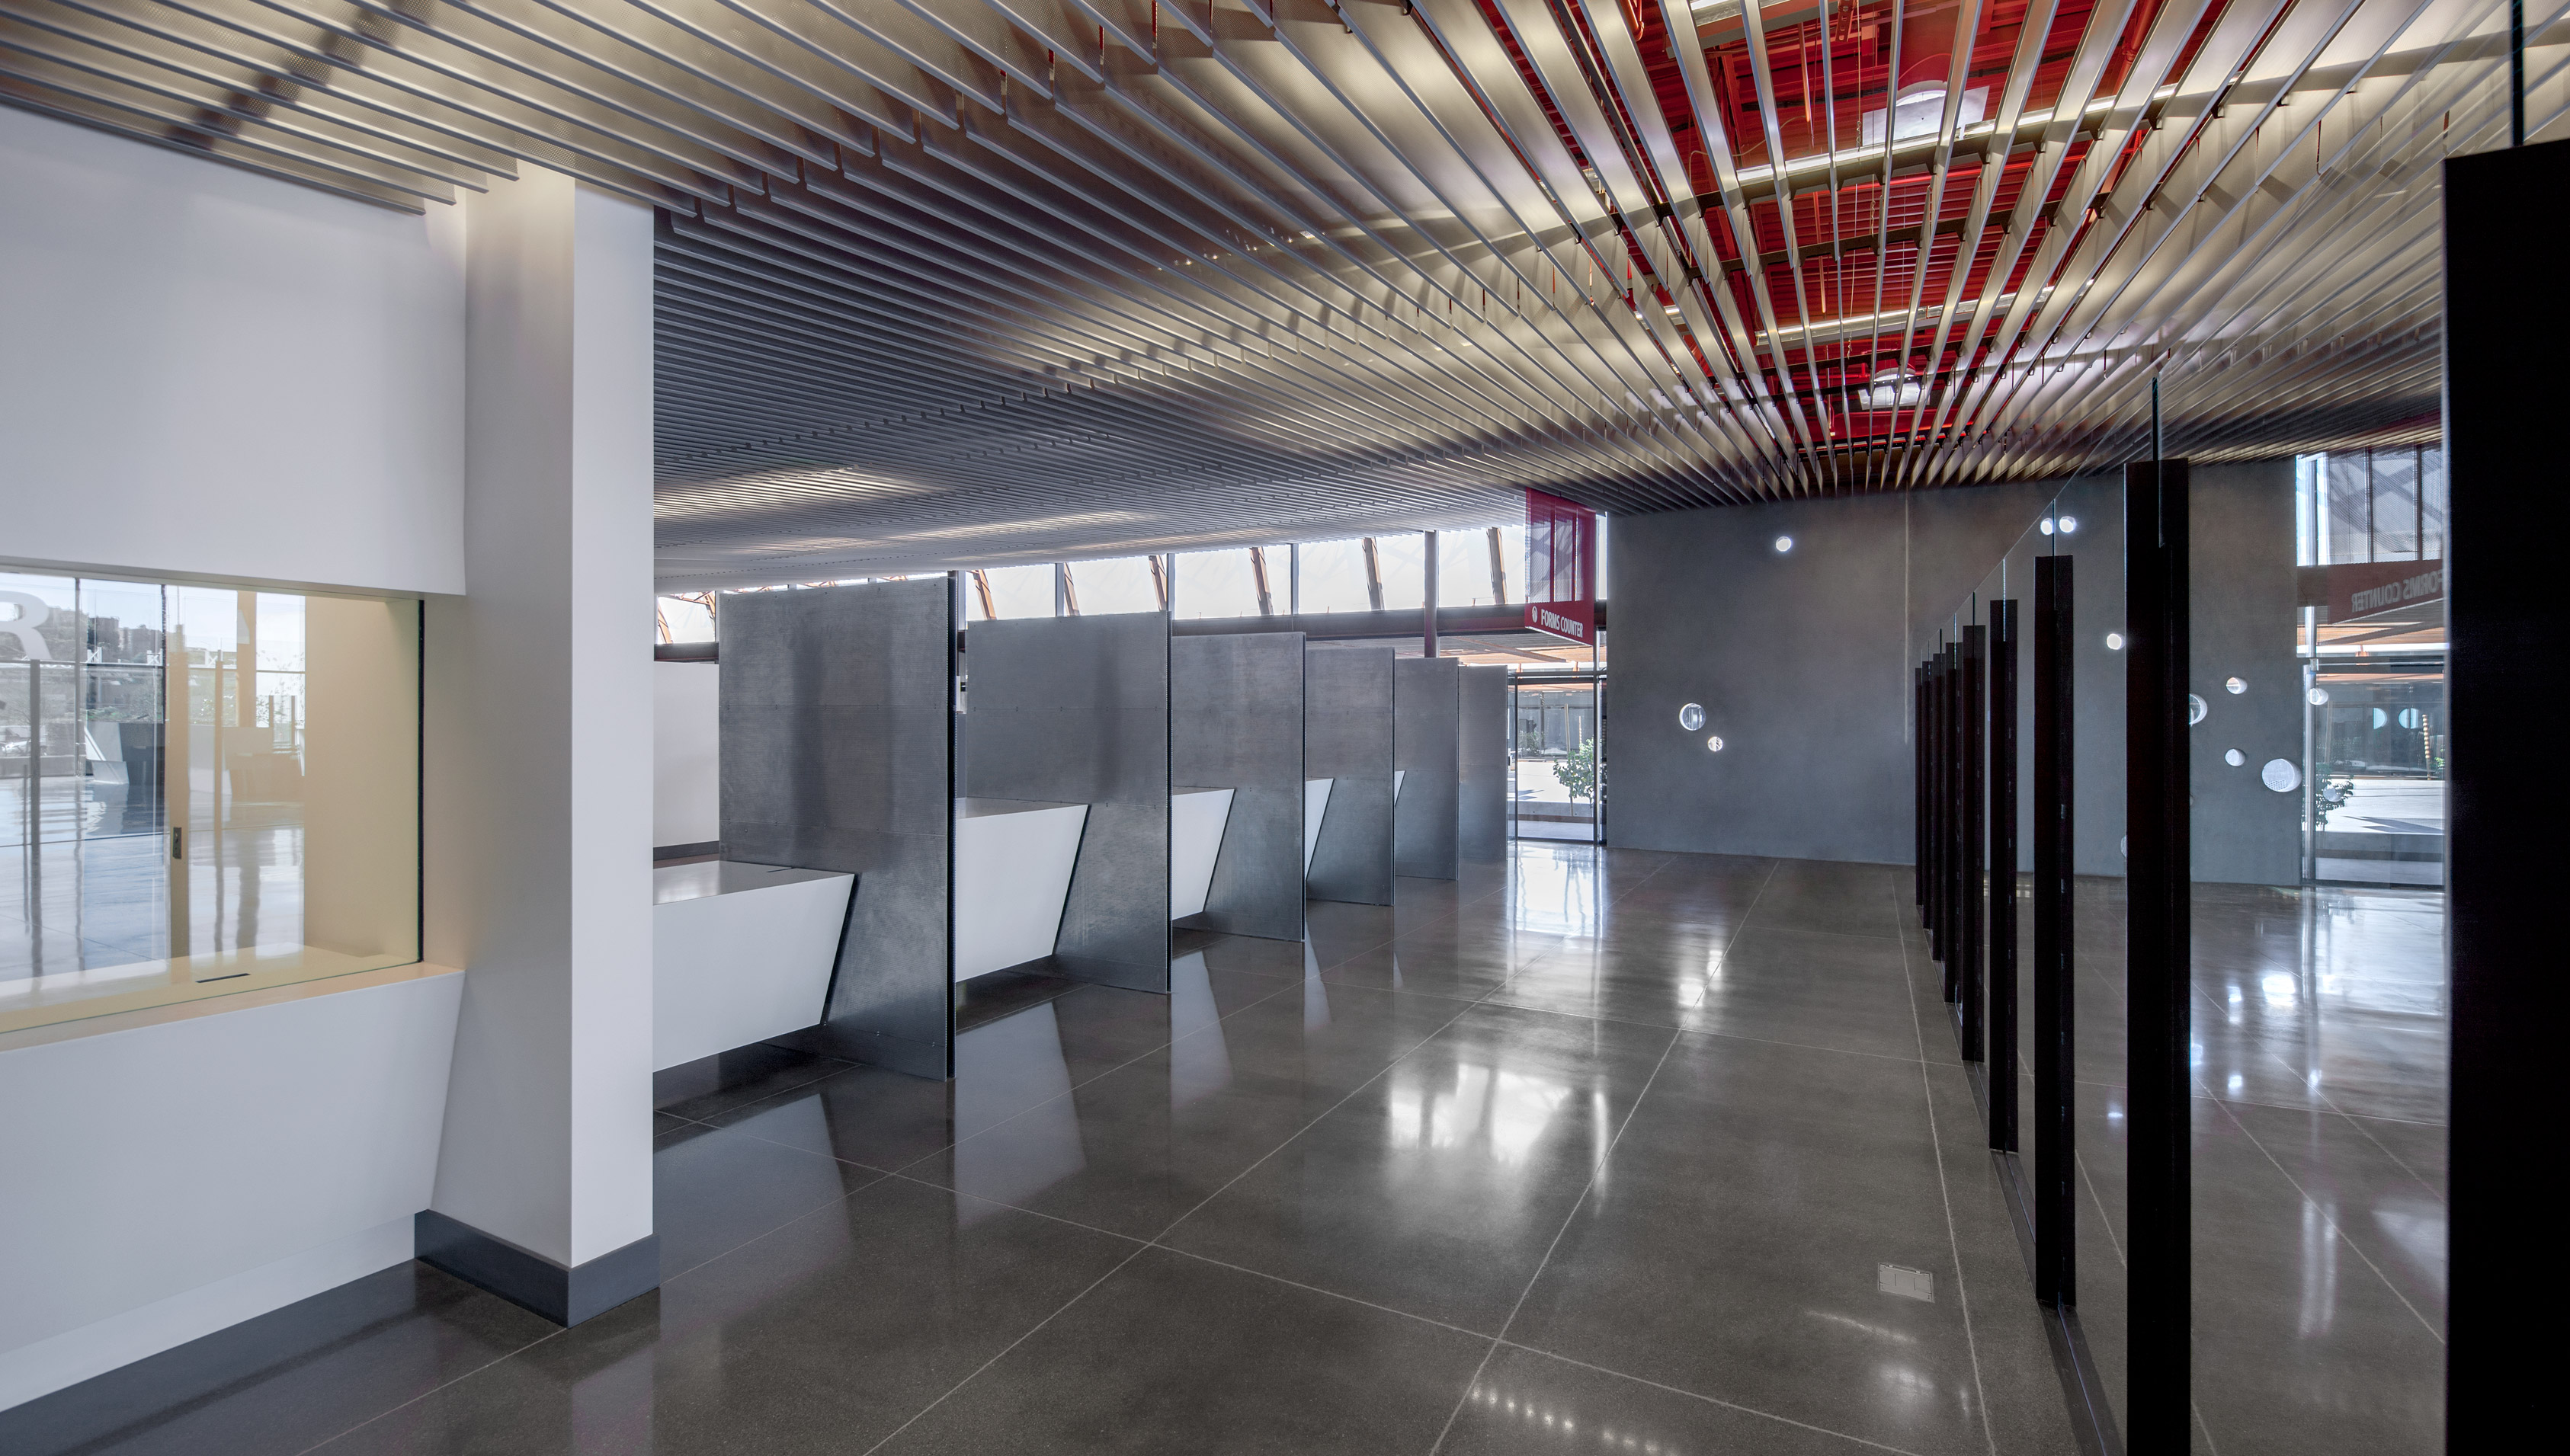 Mariposa features Hunter Douglas Architectural's V-200 Baffles Series ceilings